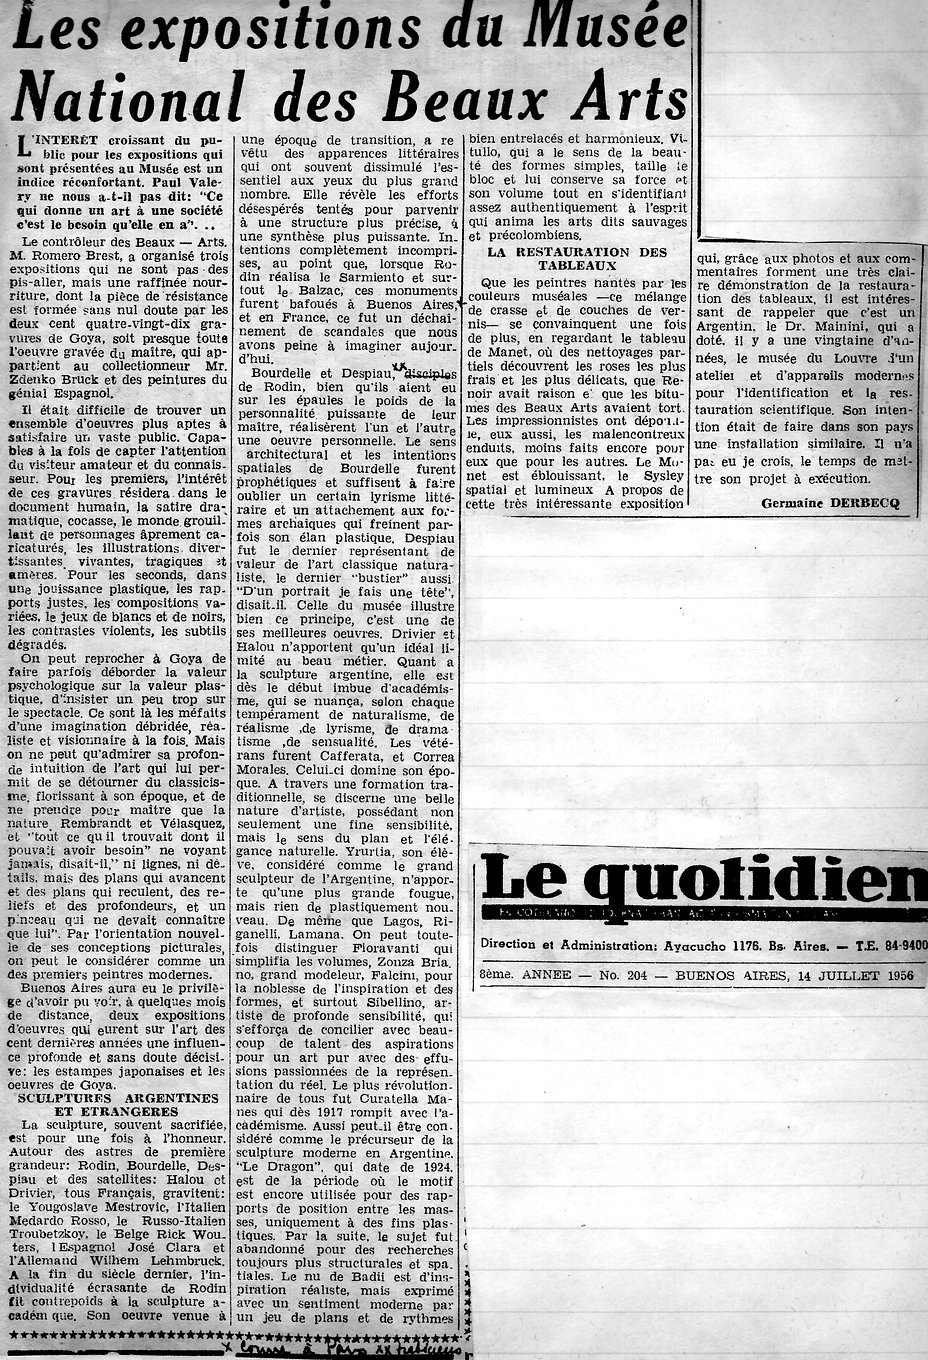 Le Quotidien (Musee National).jpg